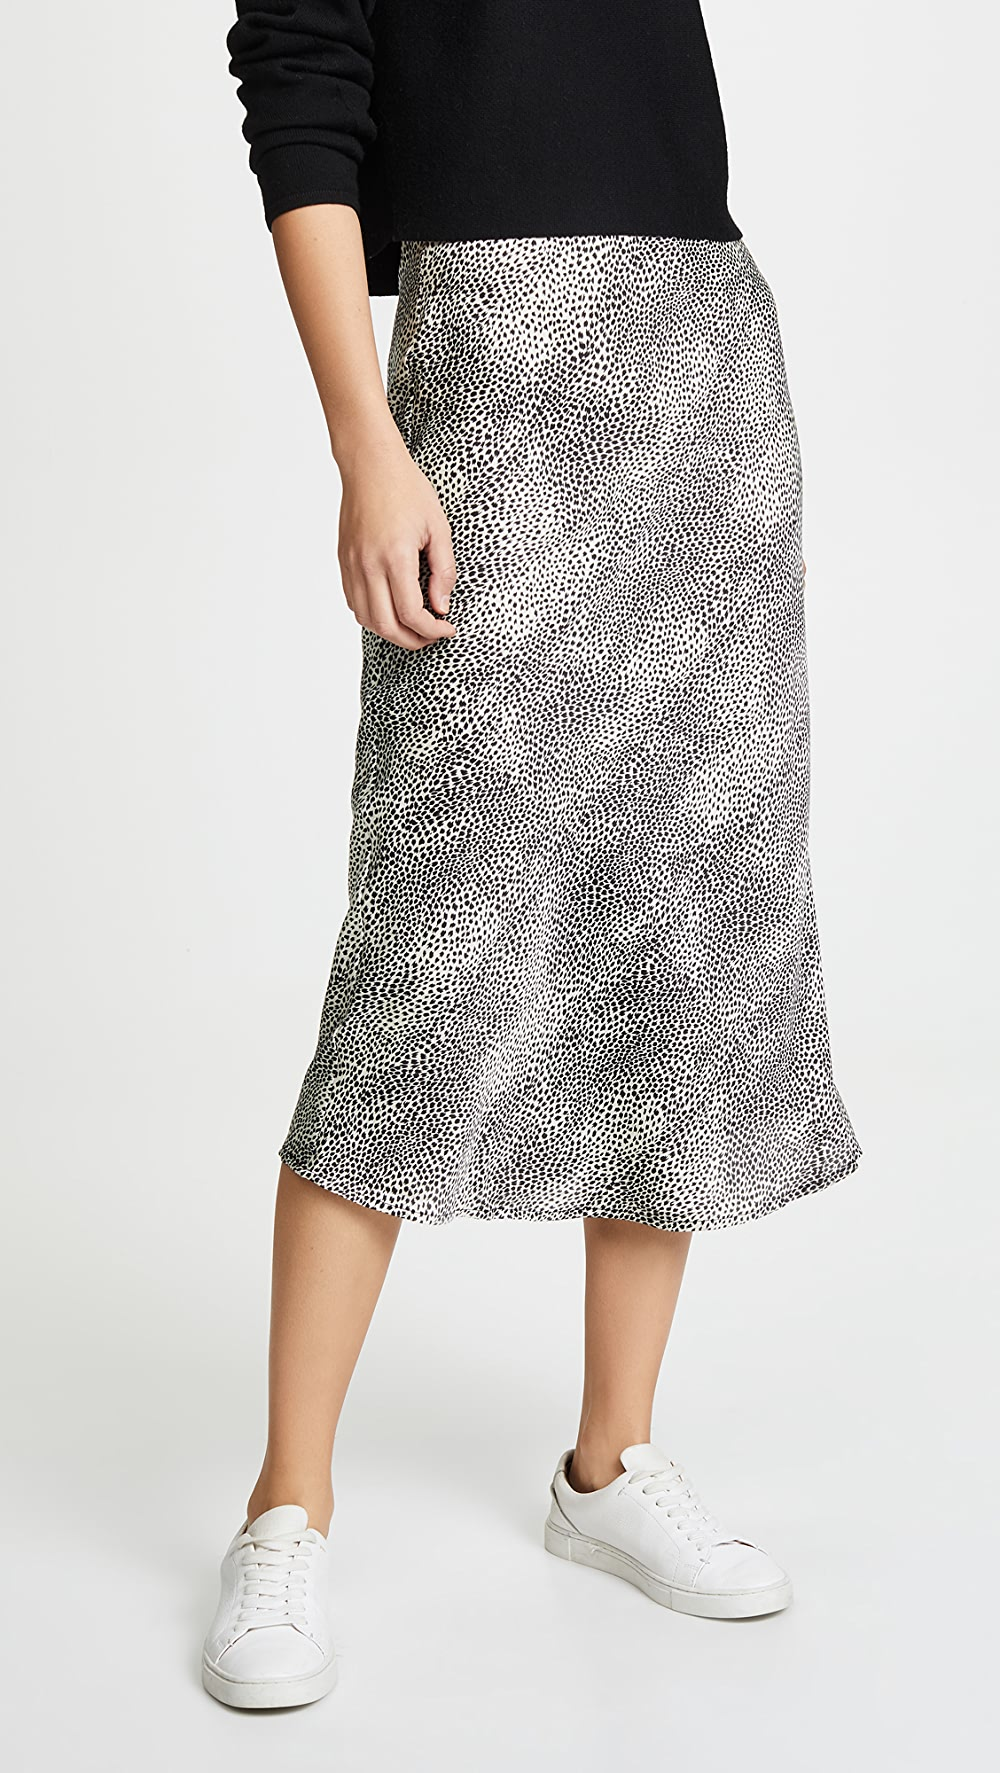 Aspiring Re:named - Leopard Midi Skirt Rapid Heat Dissipation